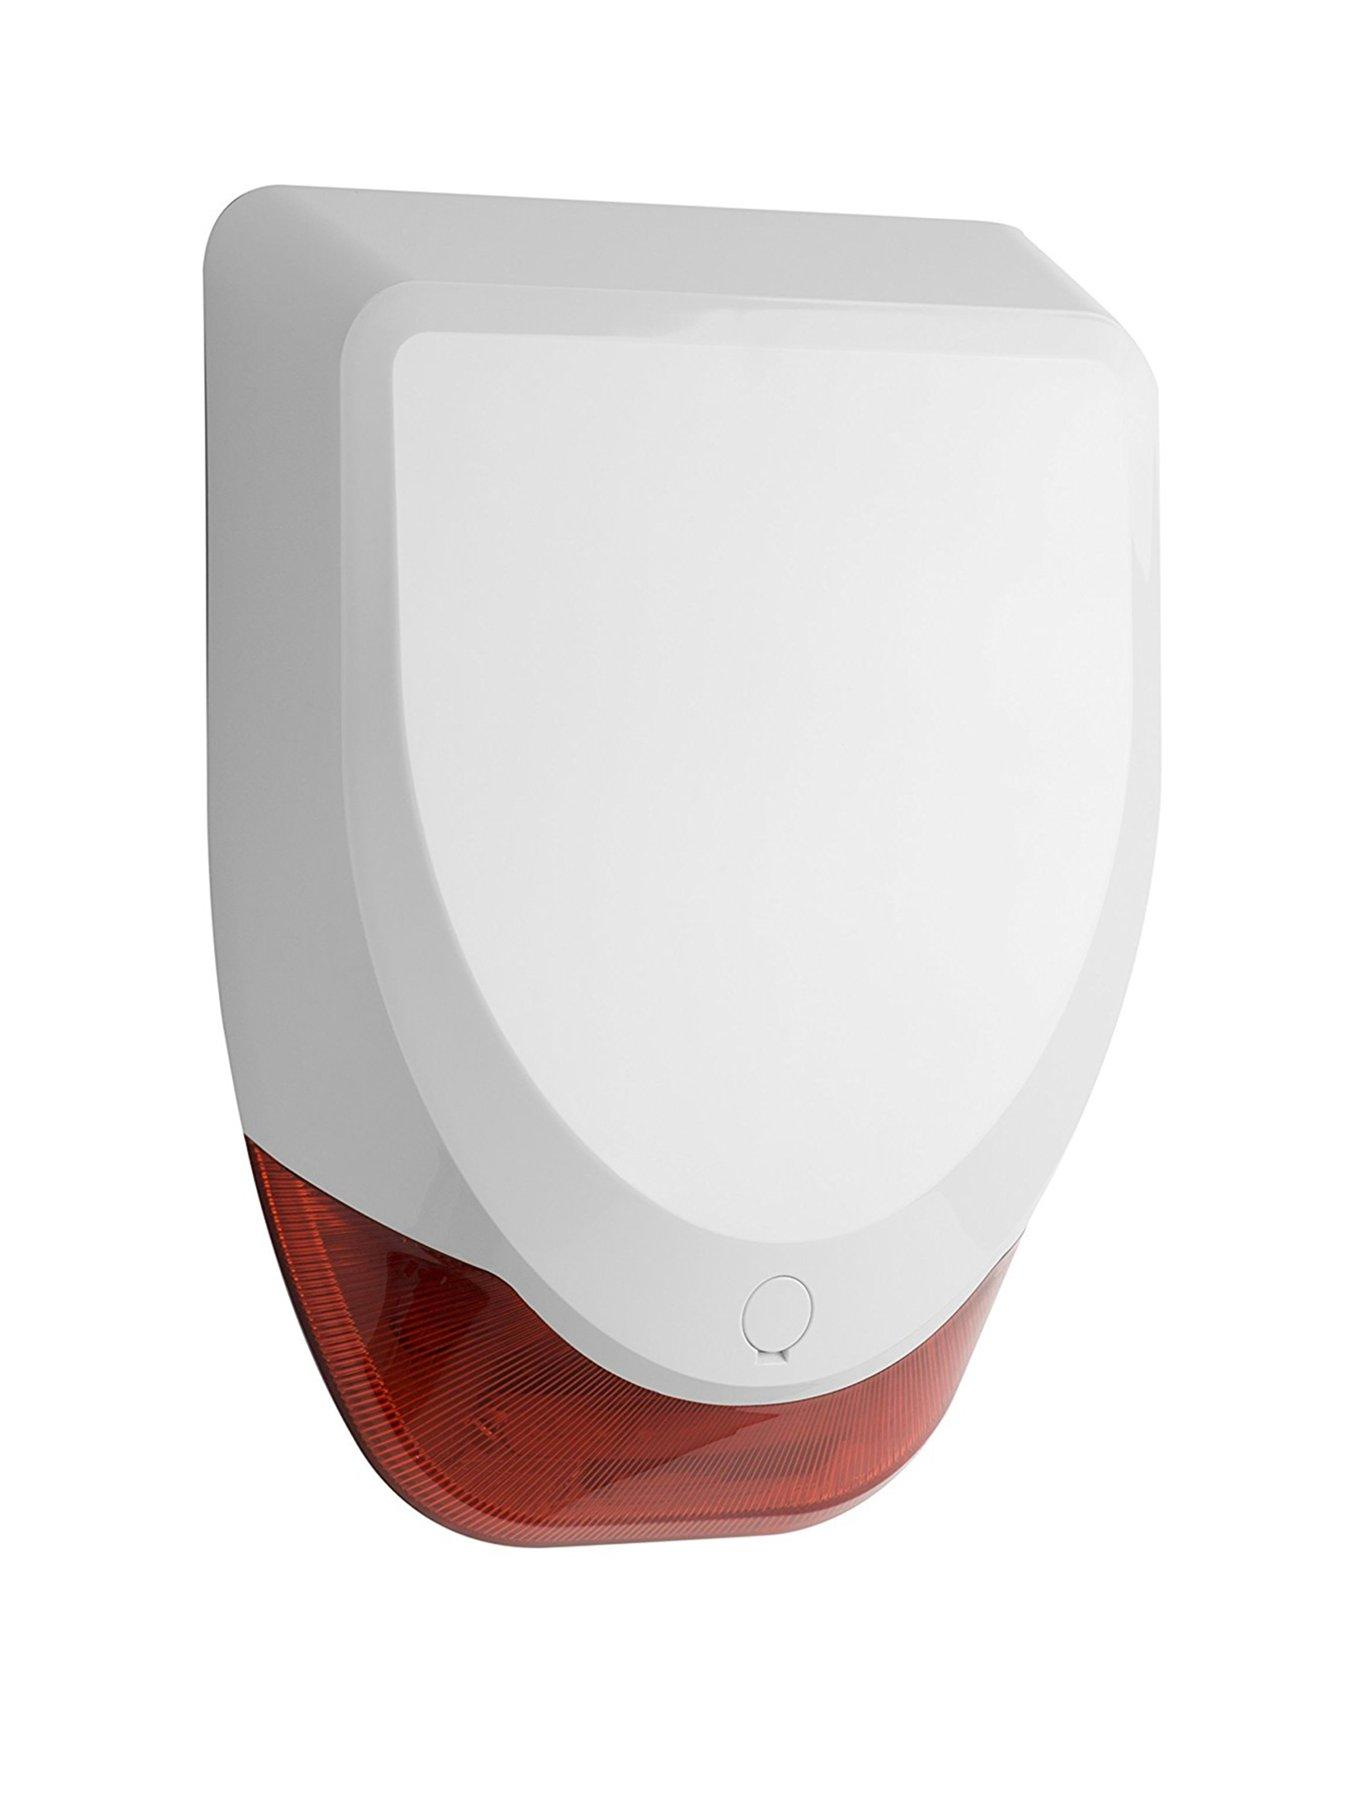 Compare prices for Honeywell Evo Wireless Battery Siren